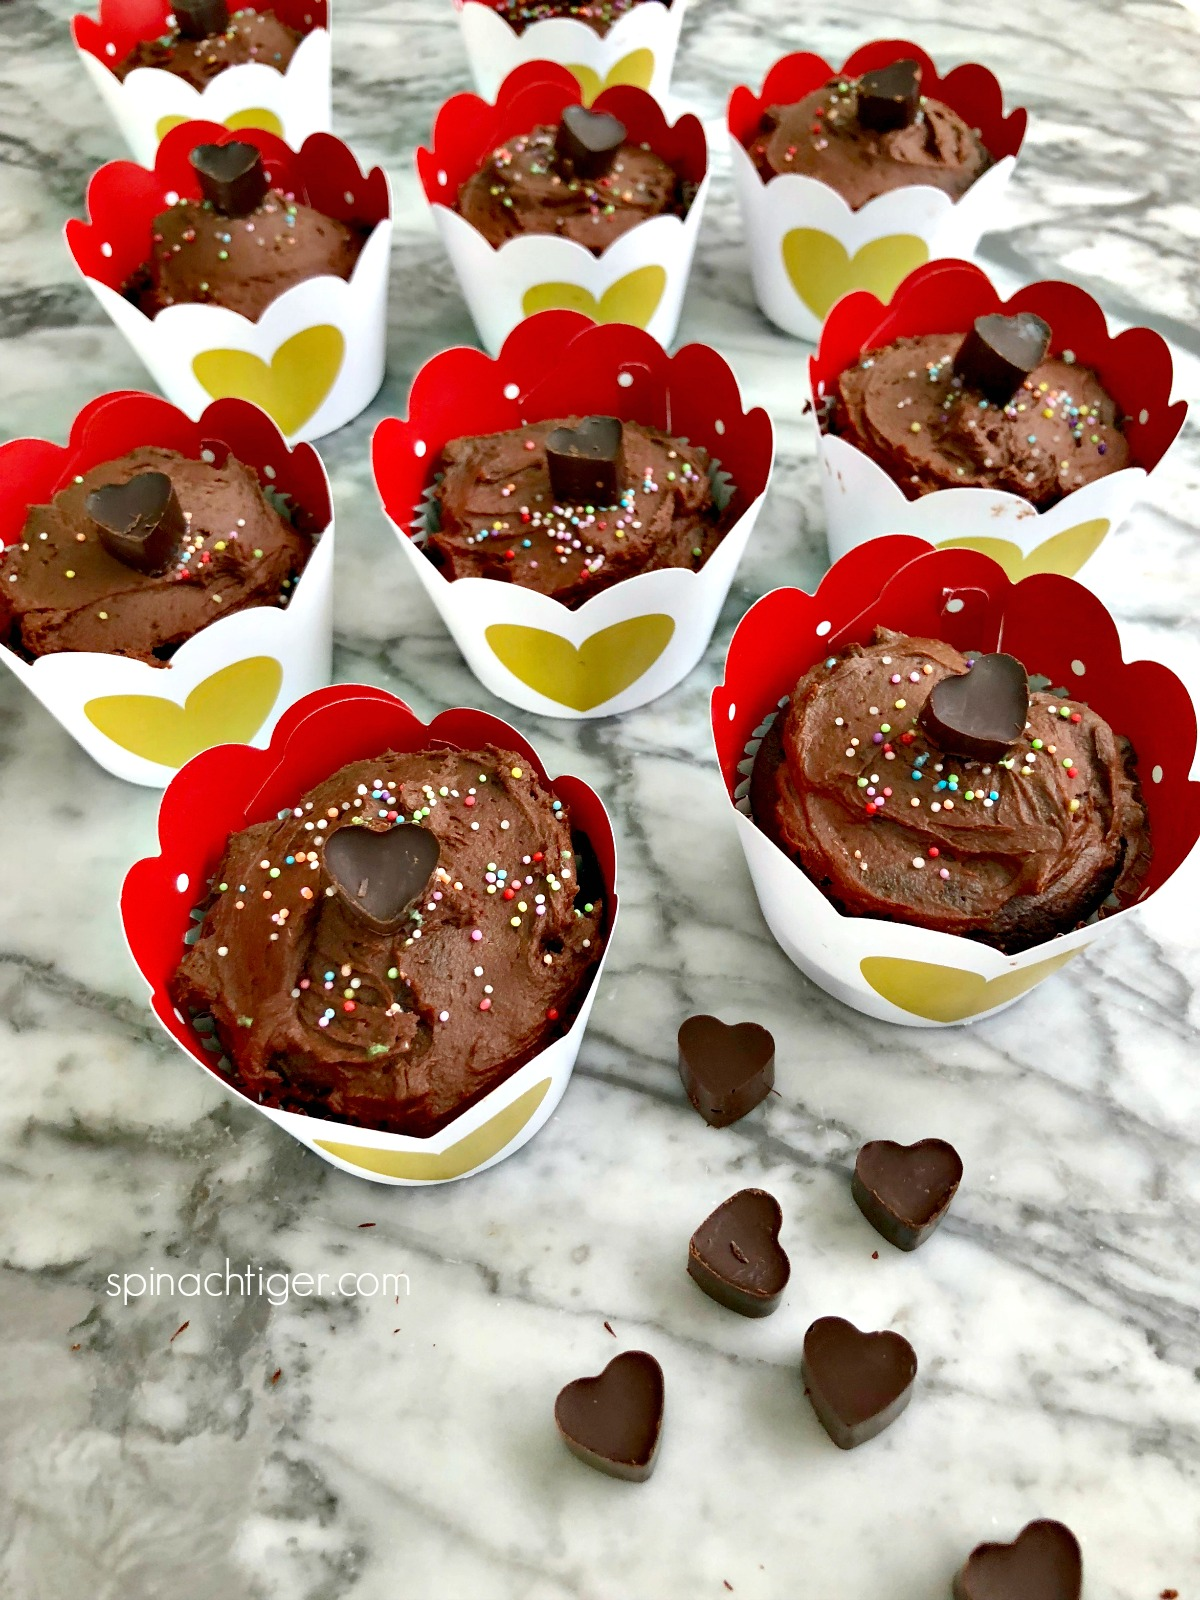 Chocolate Low Carb Cupcake Recipe from Spinach Tiger